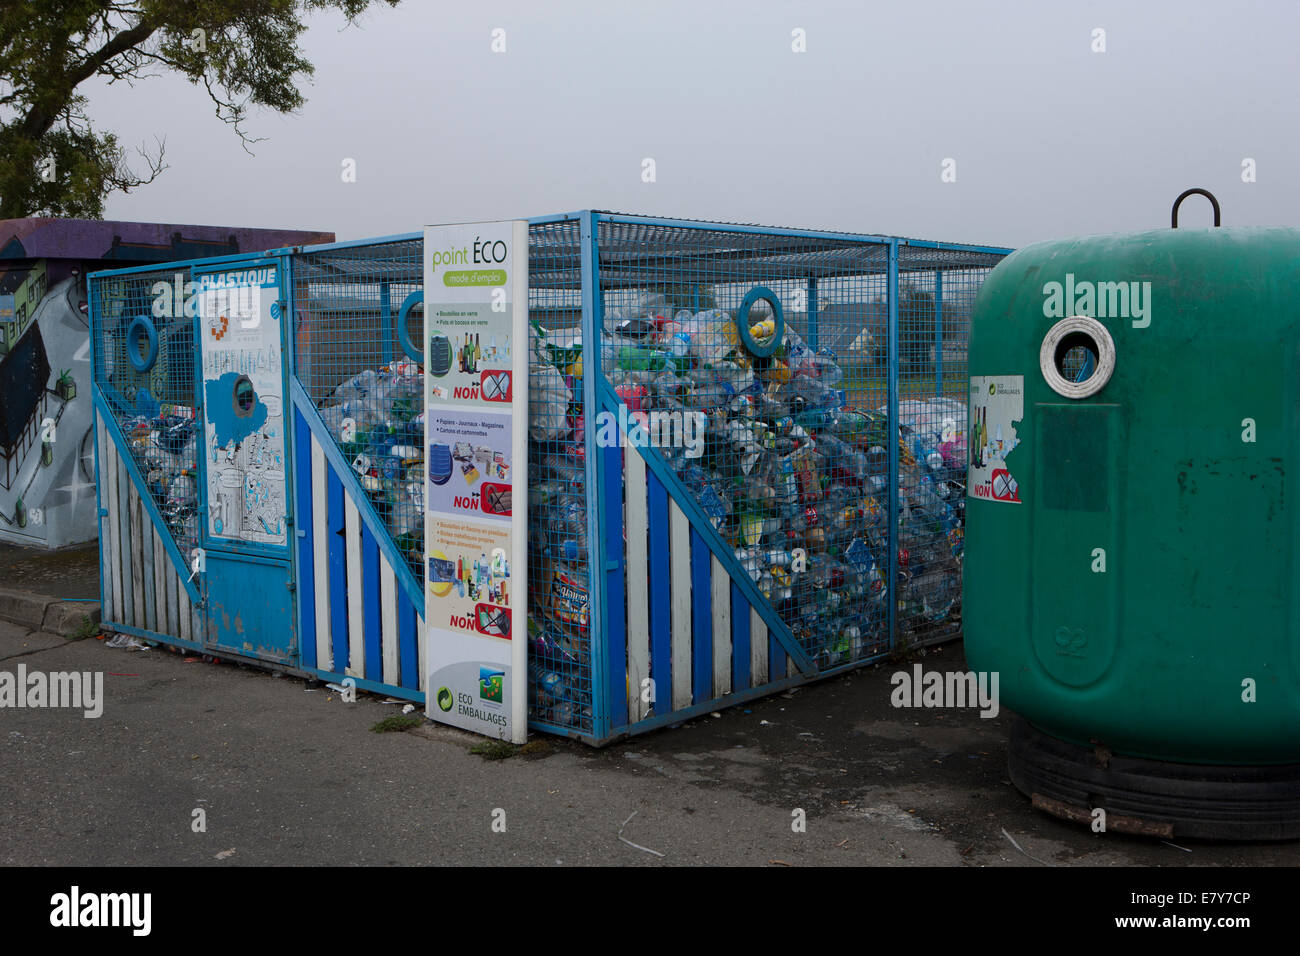 Recycling containers in a Car Park in the town of Plouescat, Brittany, France - Stock Image